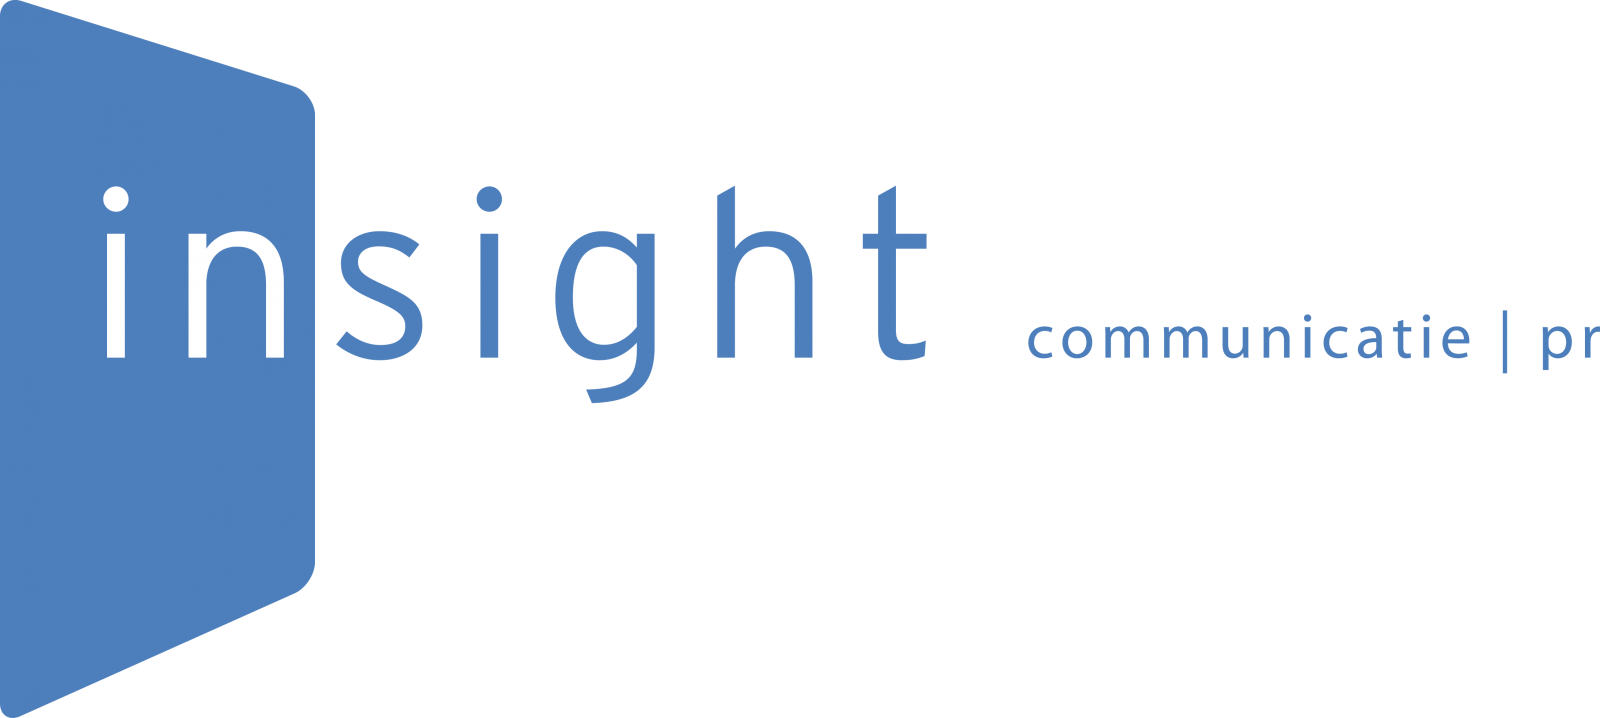 website van insight communicatie | pr, communicatiebureau in Eindhoven